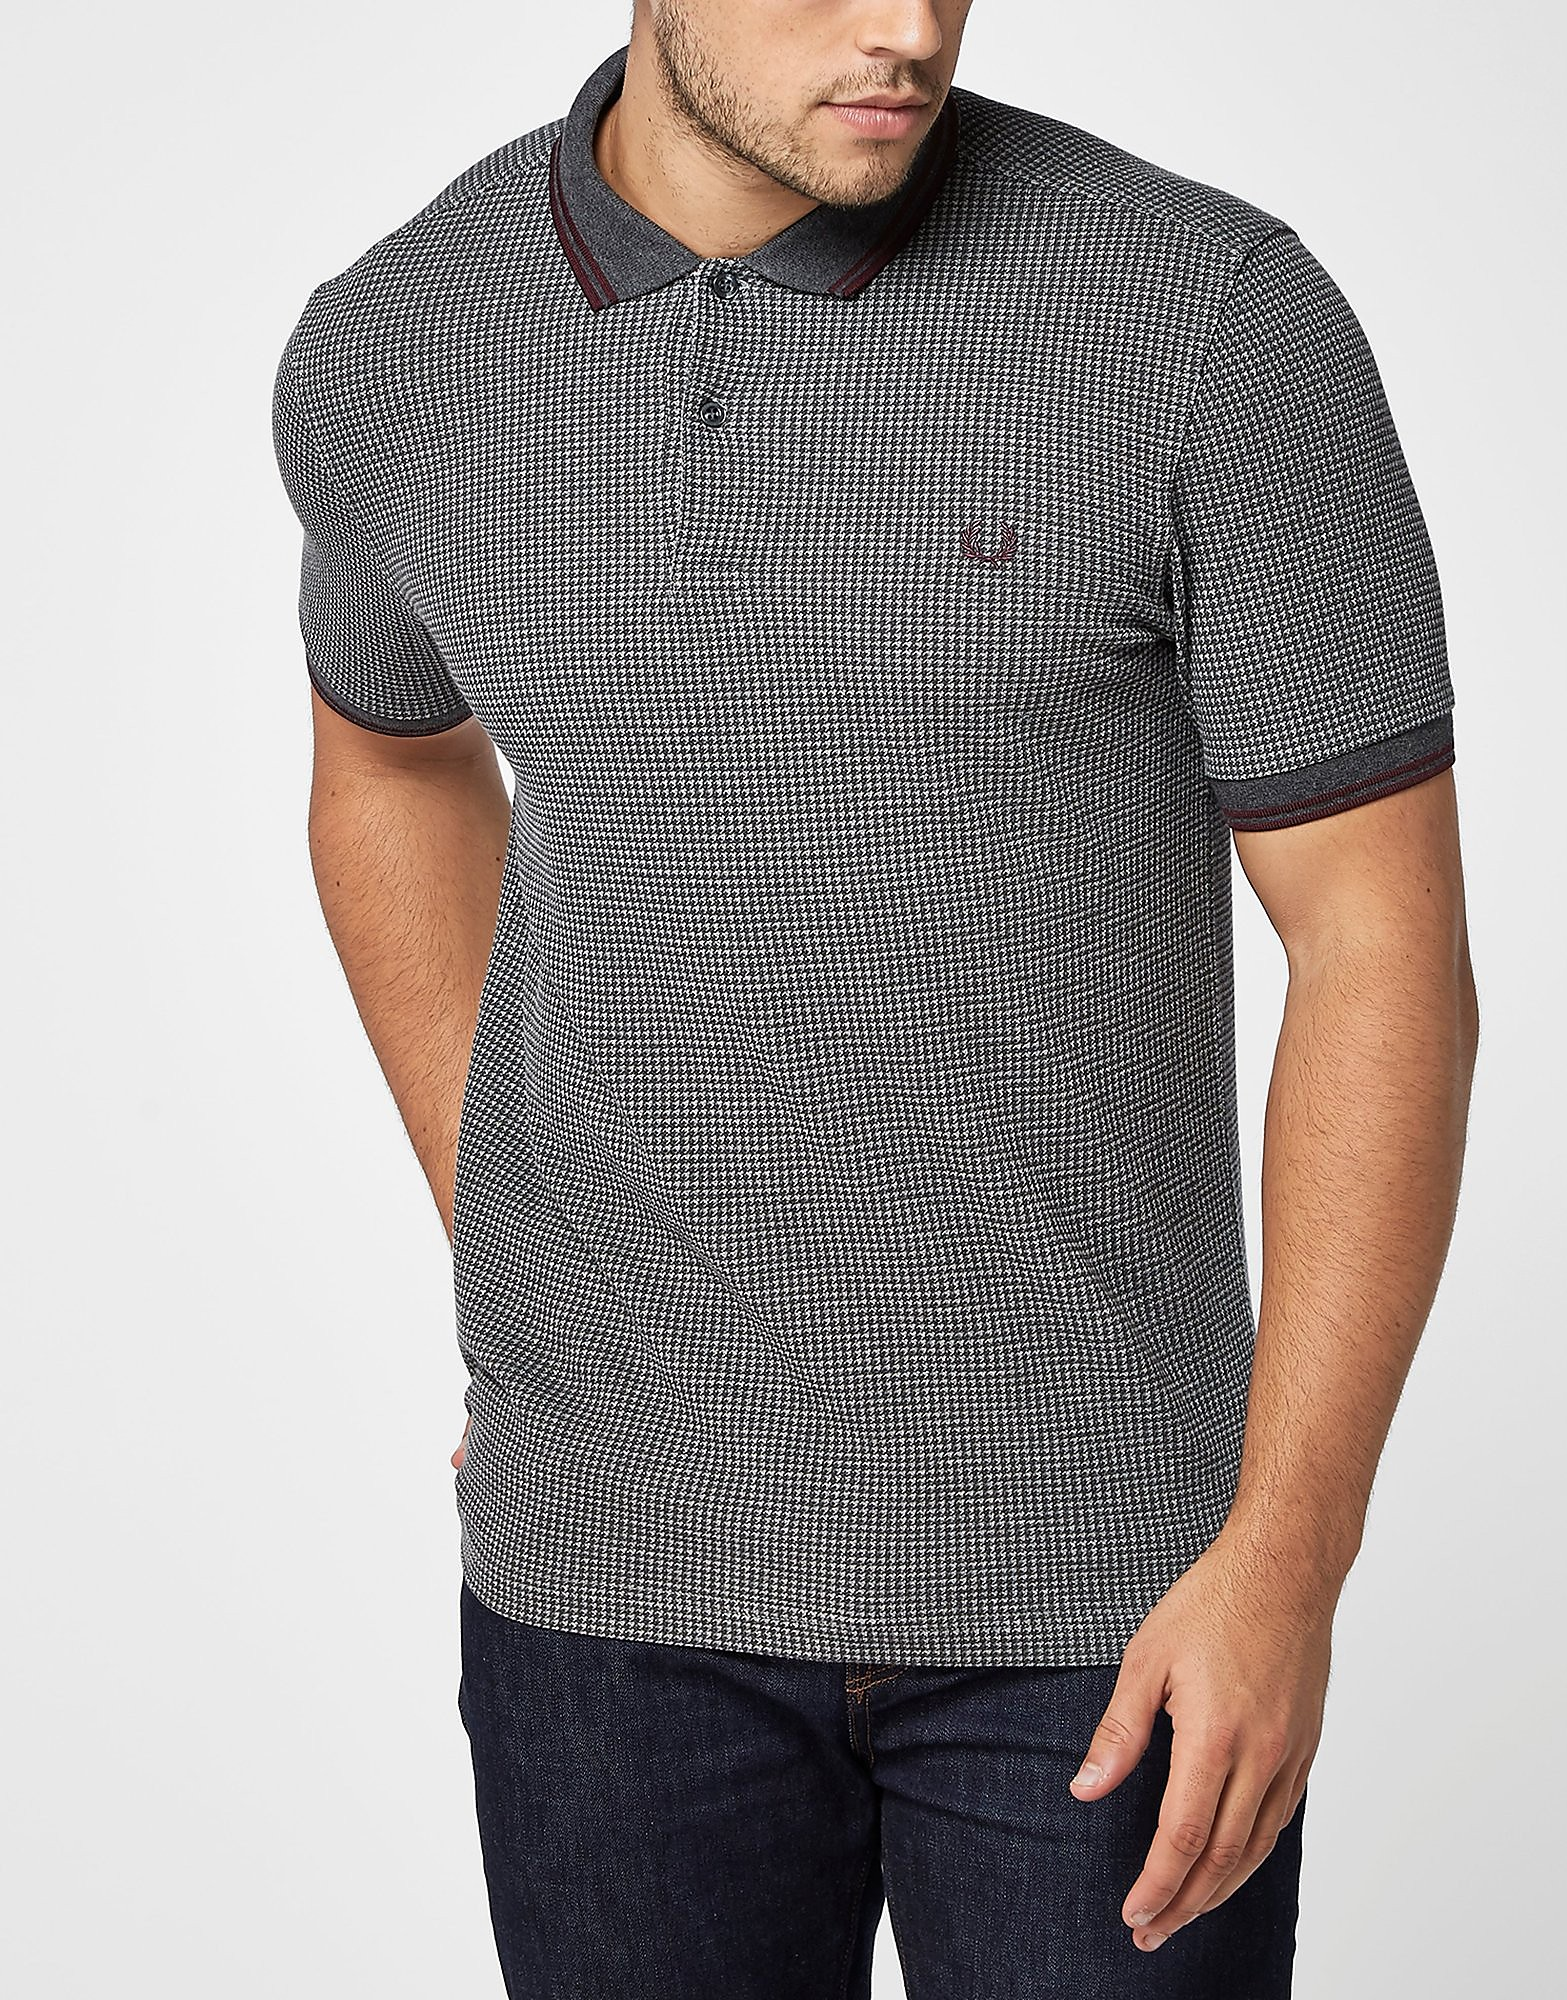 Fred Perry Houndstooth Polo SHirt  Grey Grey